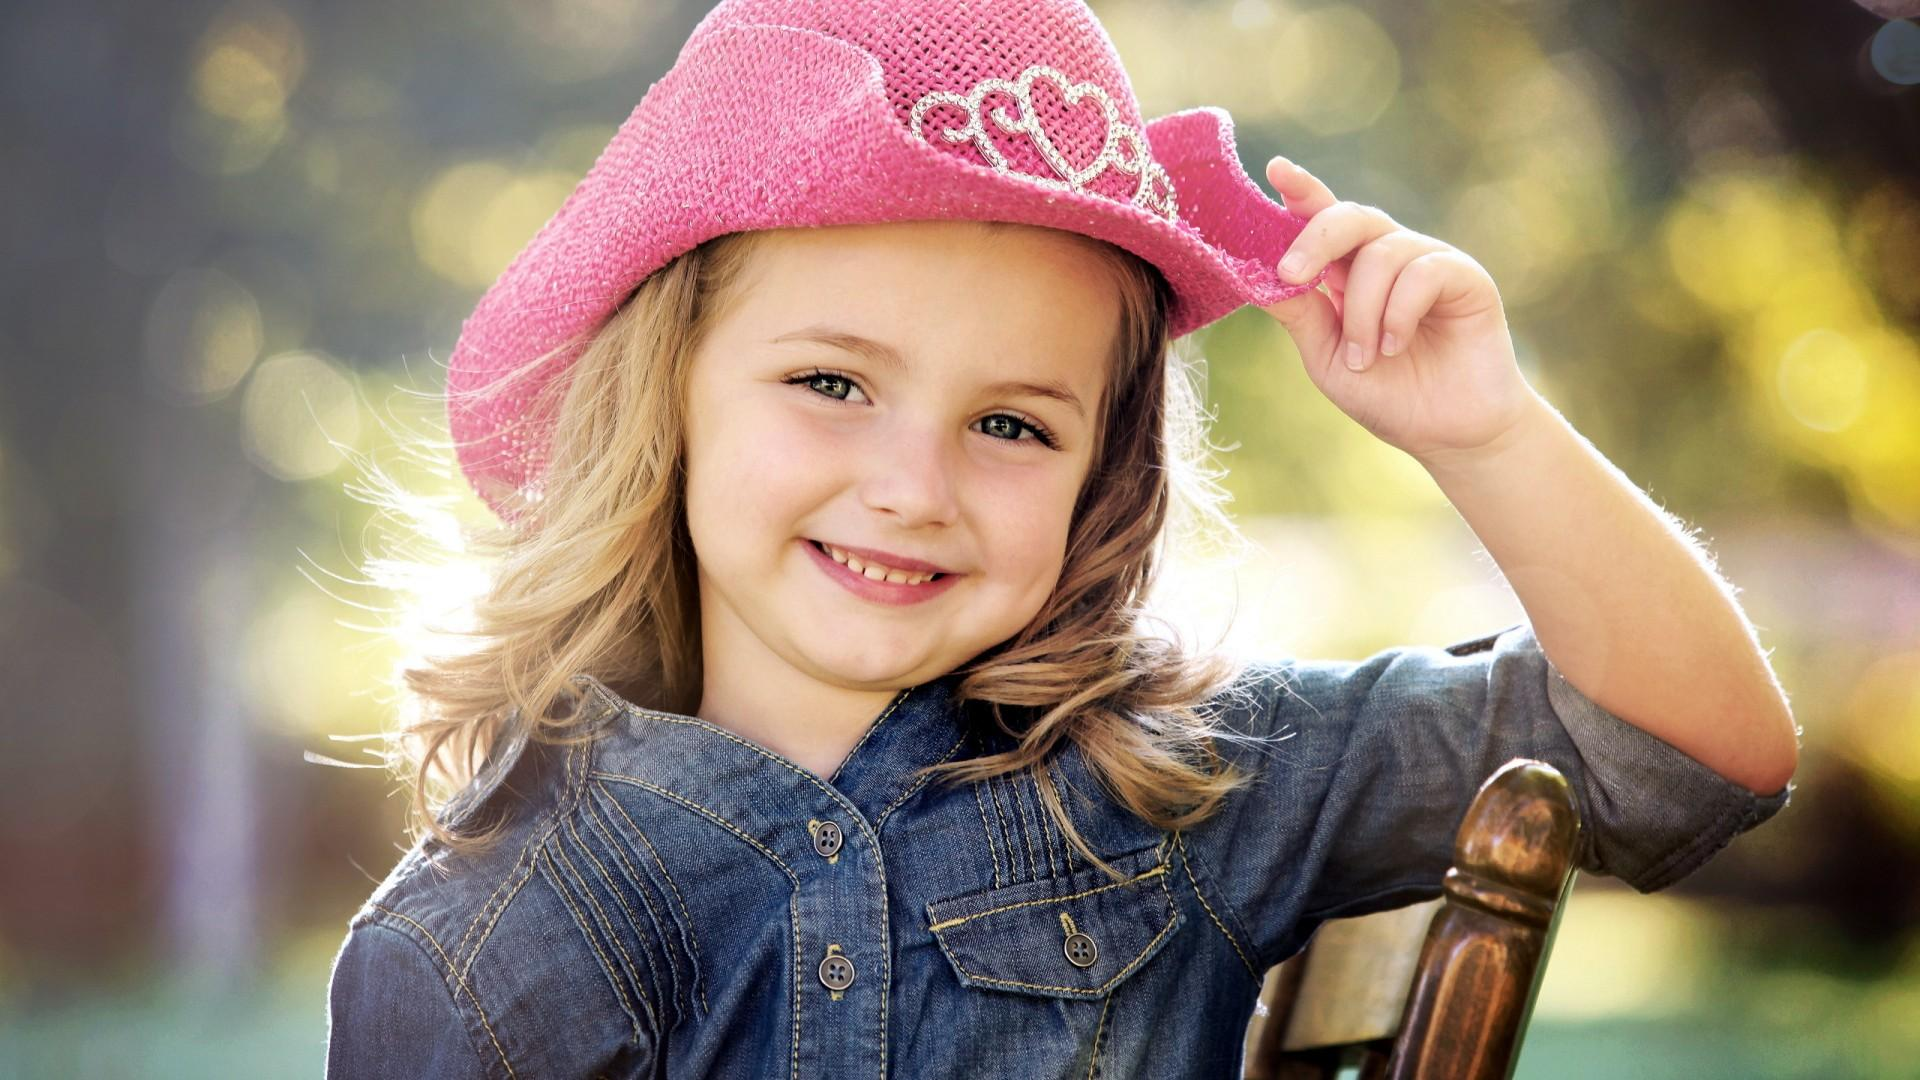 Baby-Girl-With-Hat-HD-HD-wallpaper-wp3802742